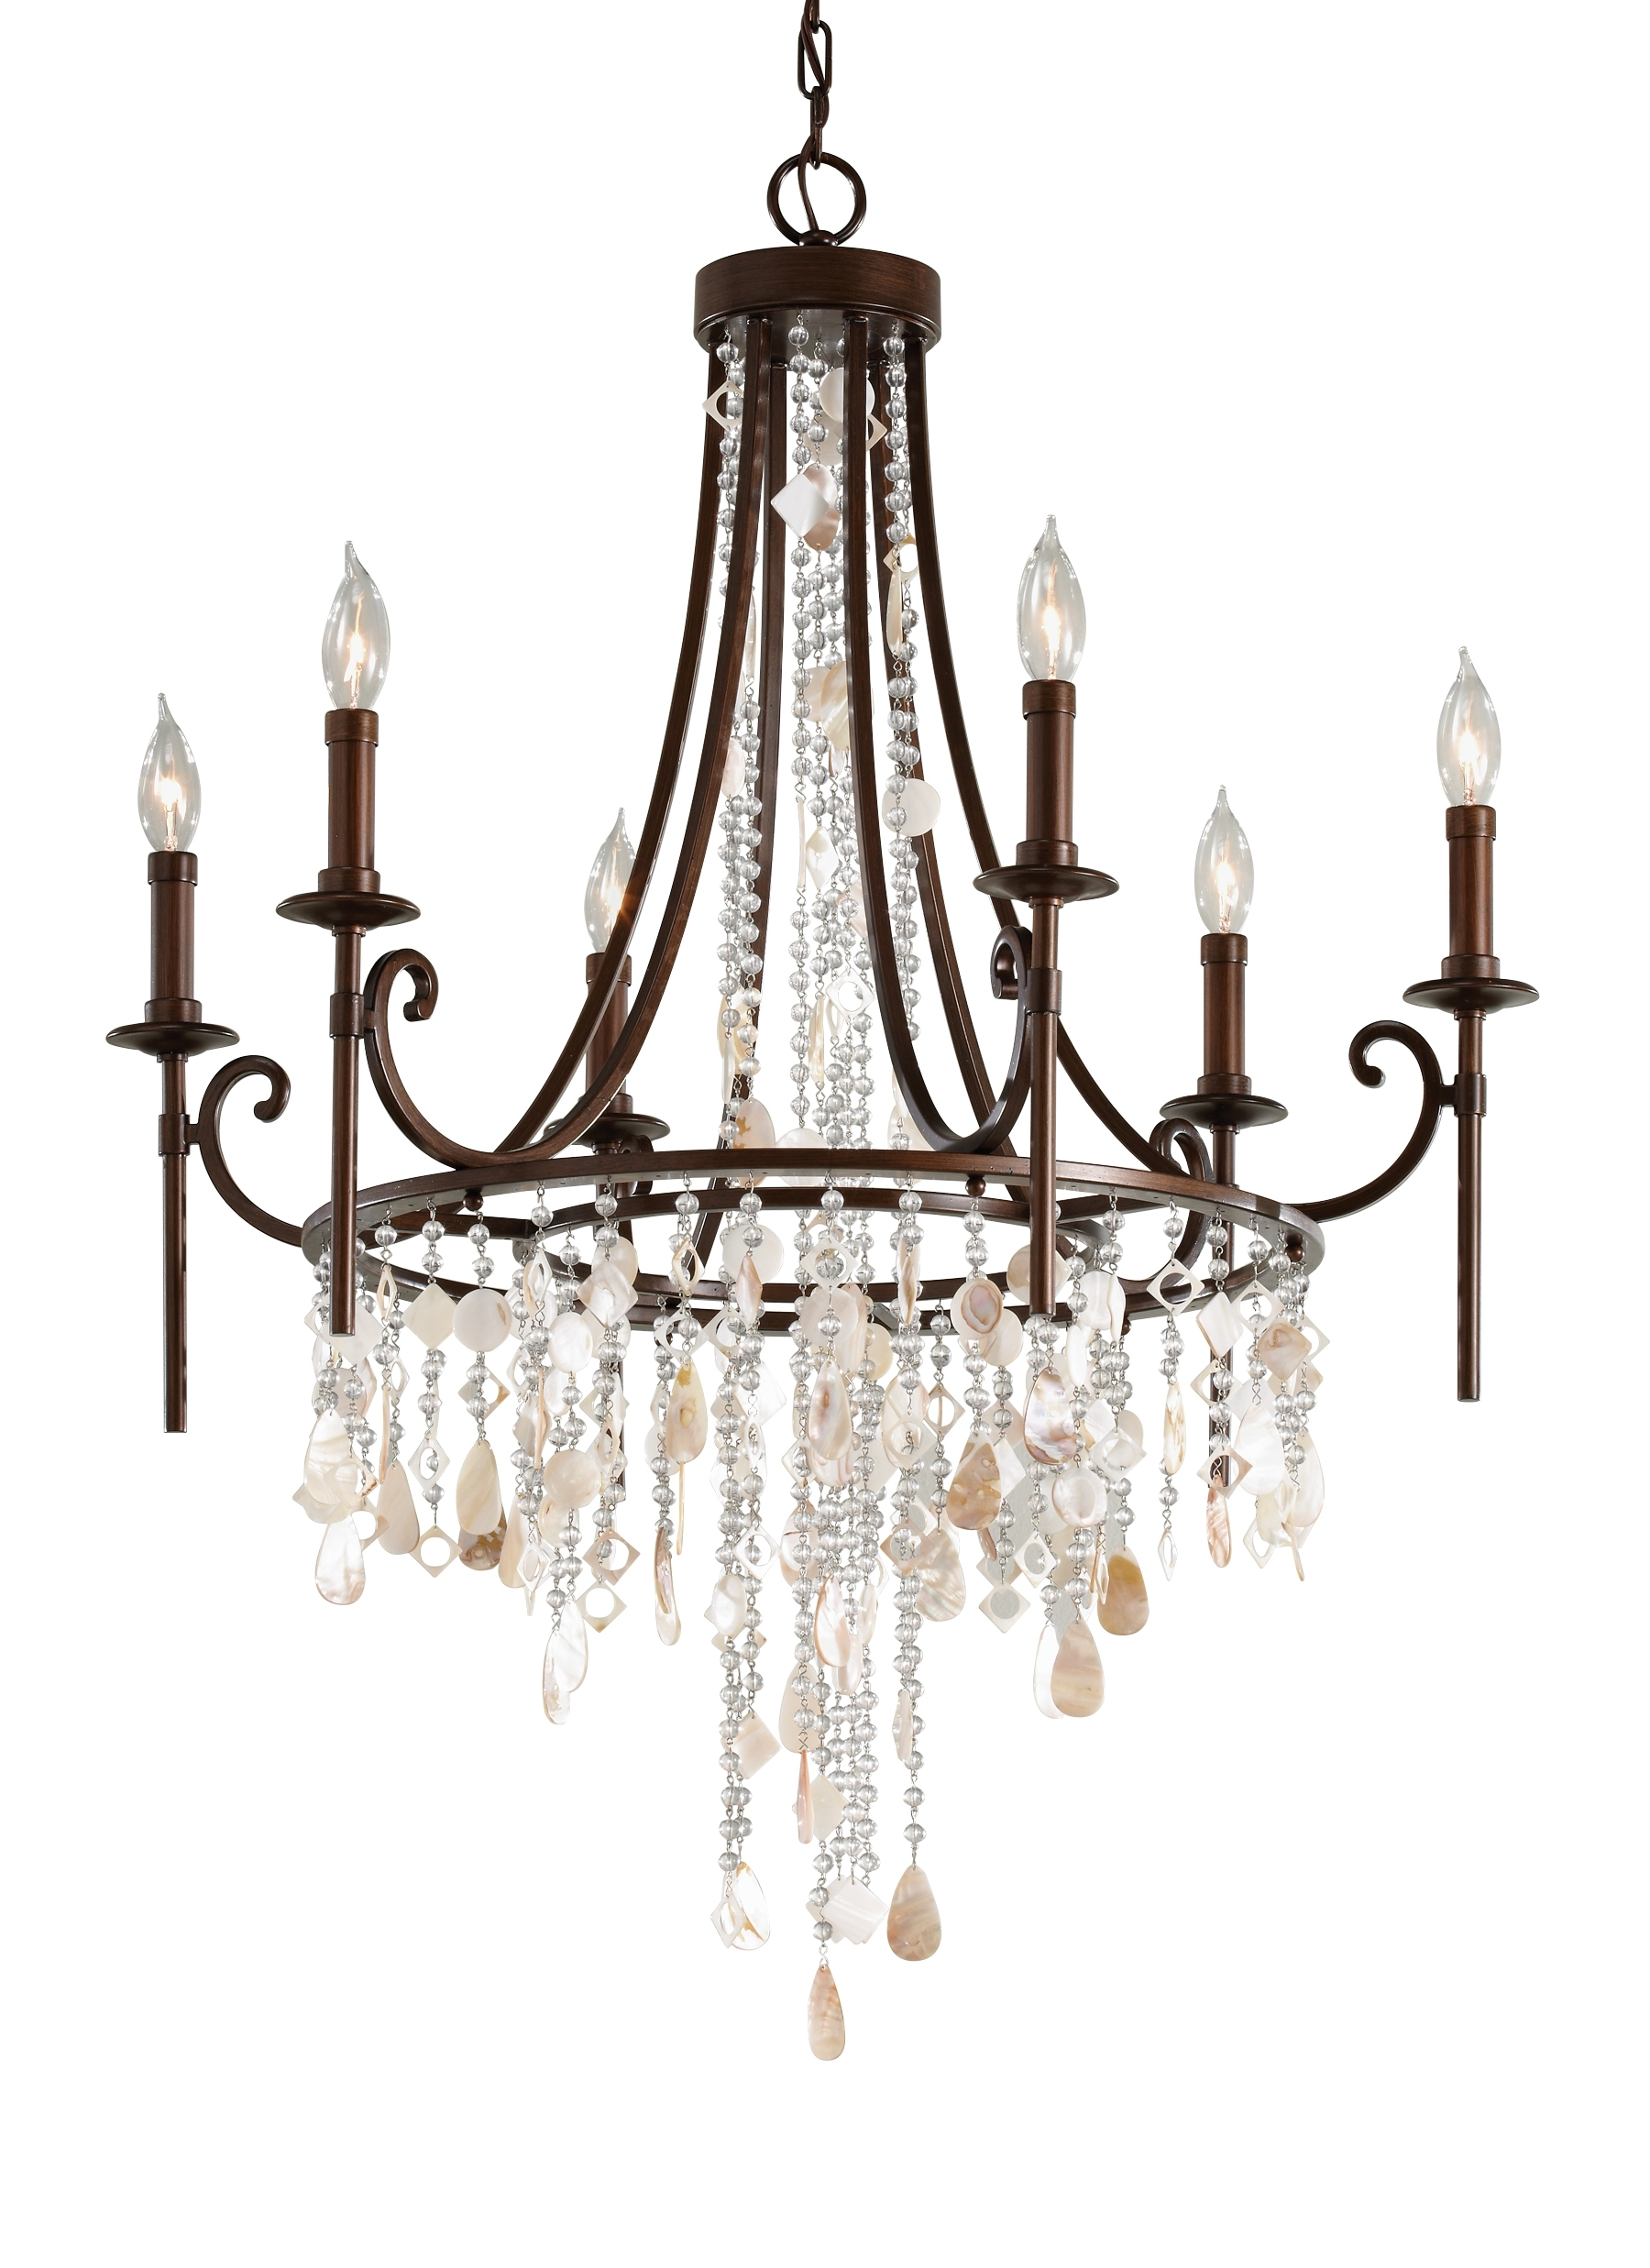 F2660/6Htbz,6 – Light Single Tier Chandelier,heritage Bronze Throughout Most Recently Released Feiss Chandeliers (View 5 of 15)